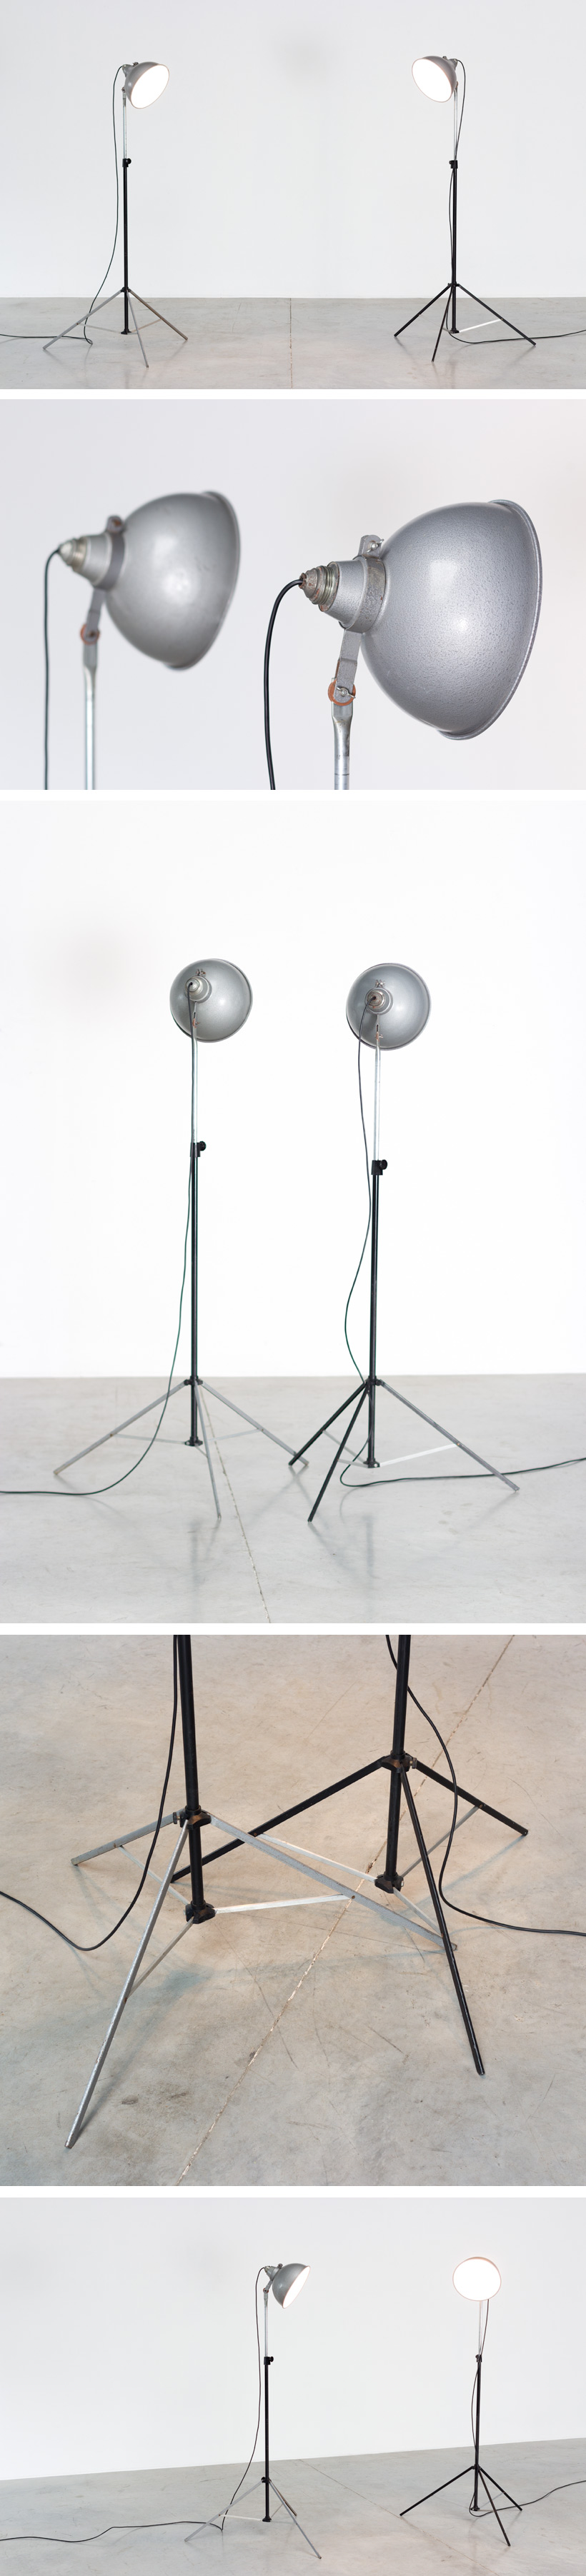 Narita pair industrial photographic studio lamps Large